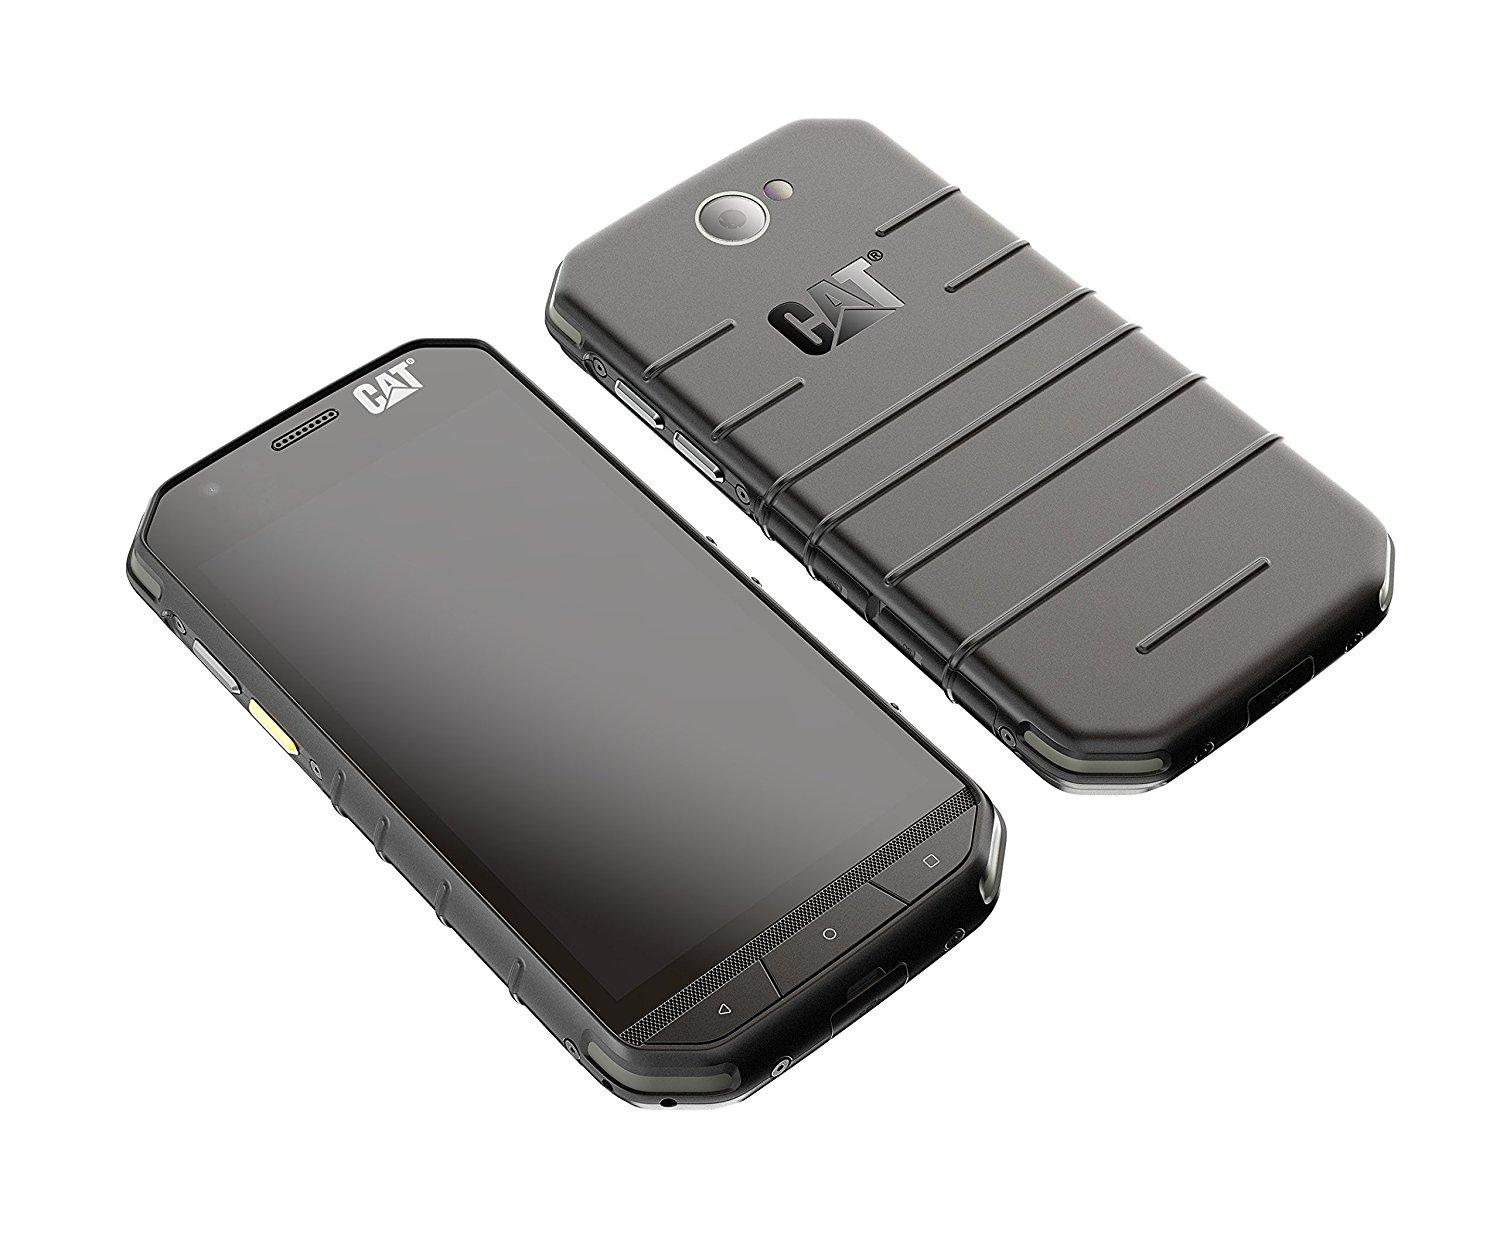 Caterpillar CAT S31 - 4.7 - 16GB - Android - black Mobilais Telefons